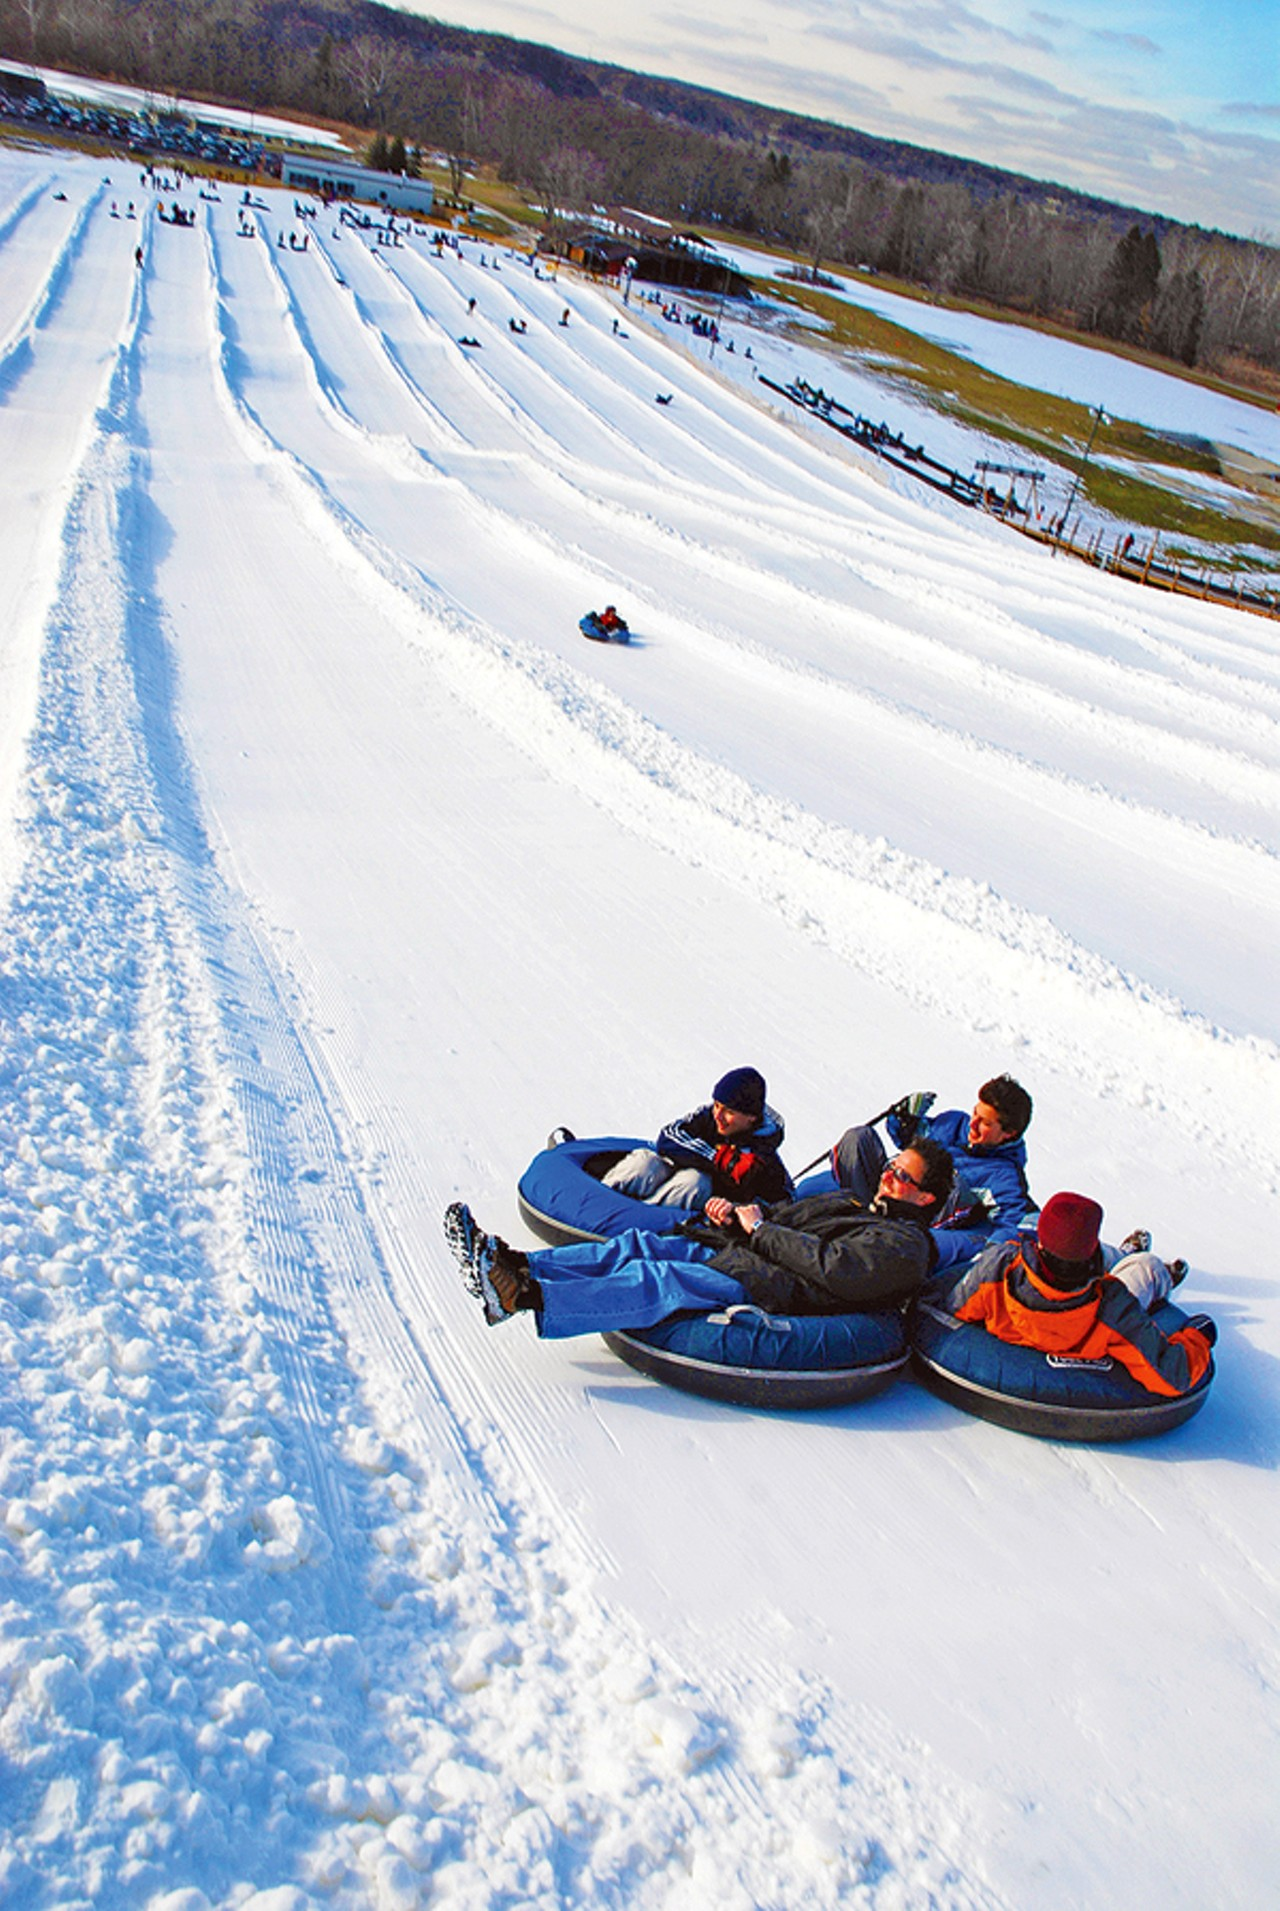 25 Things to Do this Winter Winter Guide